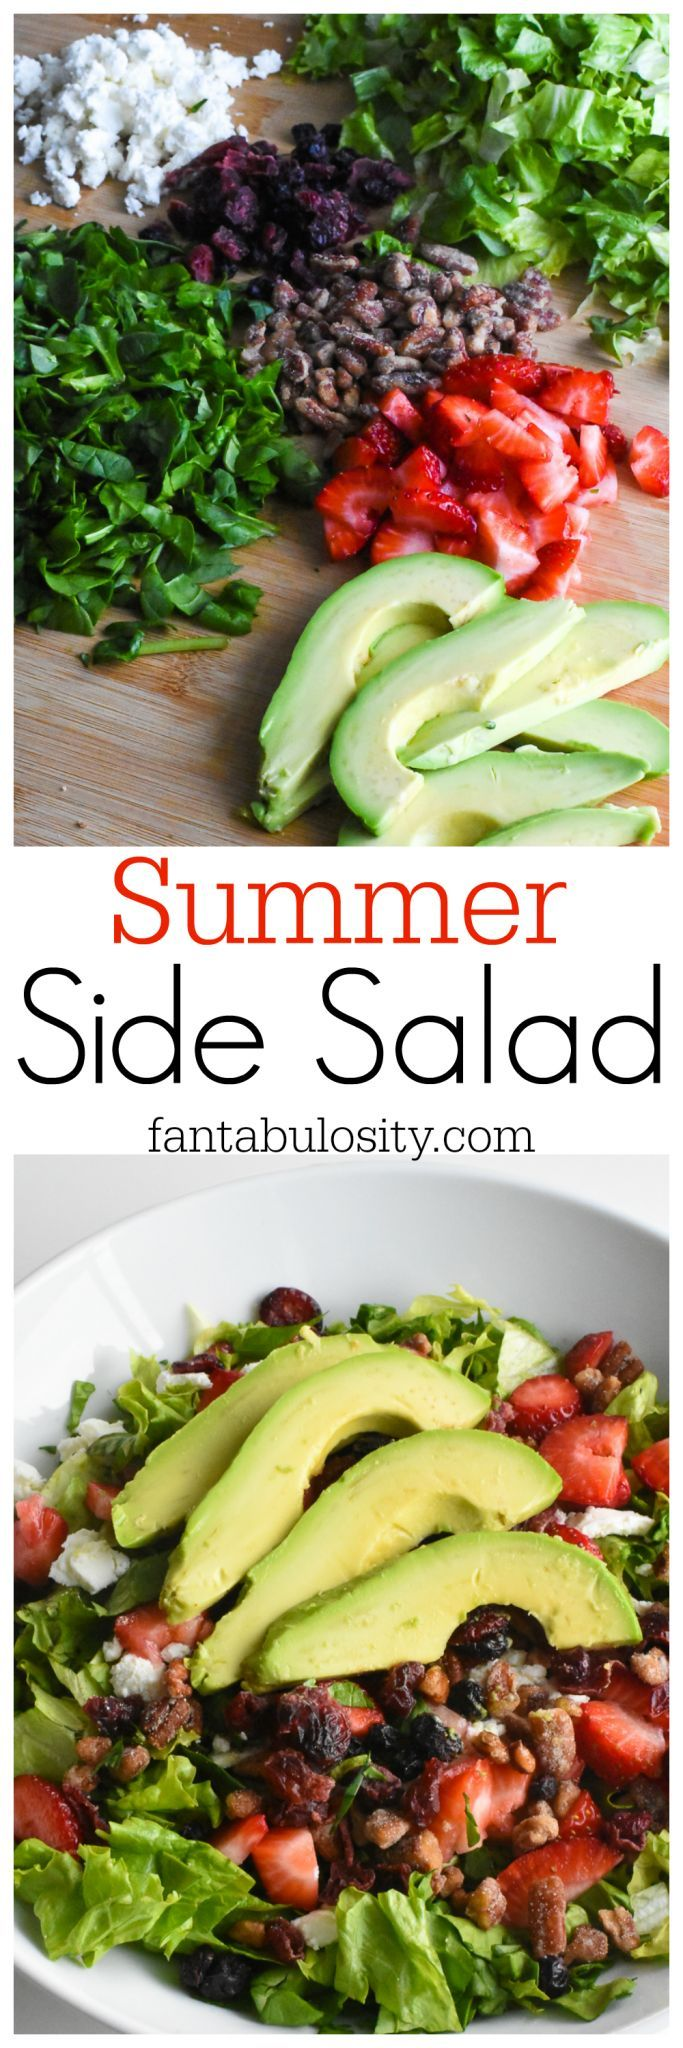 Summer Side Salad Recipe. I'll be taking this to EVERY outing, this year. http://fantabulosity.com